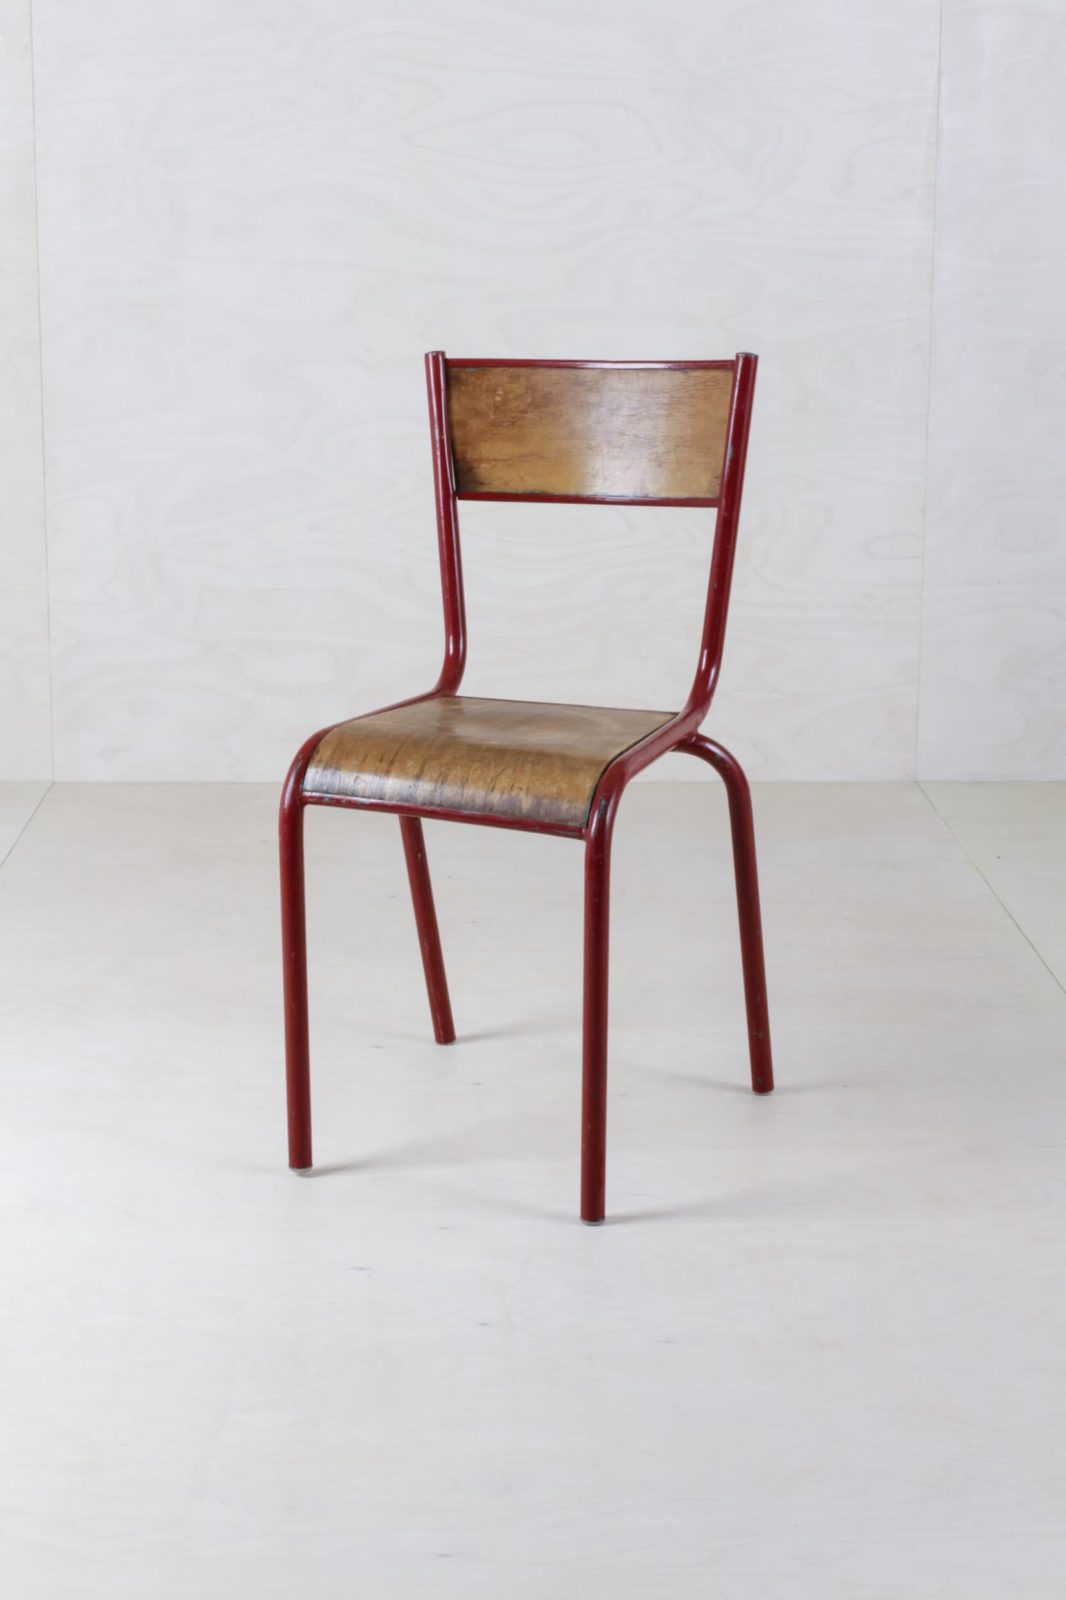 Tubular Steel Chair Salazar Red | This Mullca 510 vintage chair could be found in French schools, dating back to the 1960s. A great patina shows its history.Tubular steel chair saved out of a French class room.Up to 140 pieces available, in different colours and conditions: you definitely can see they are not straight out of a factory. | gotvintage Rental & Event Design